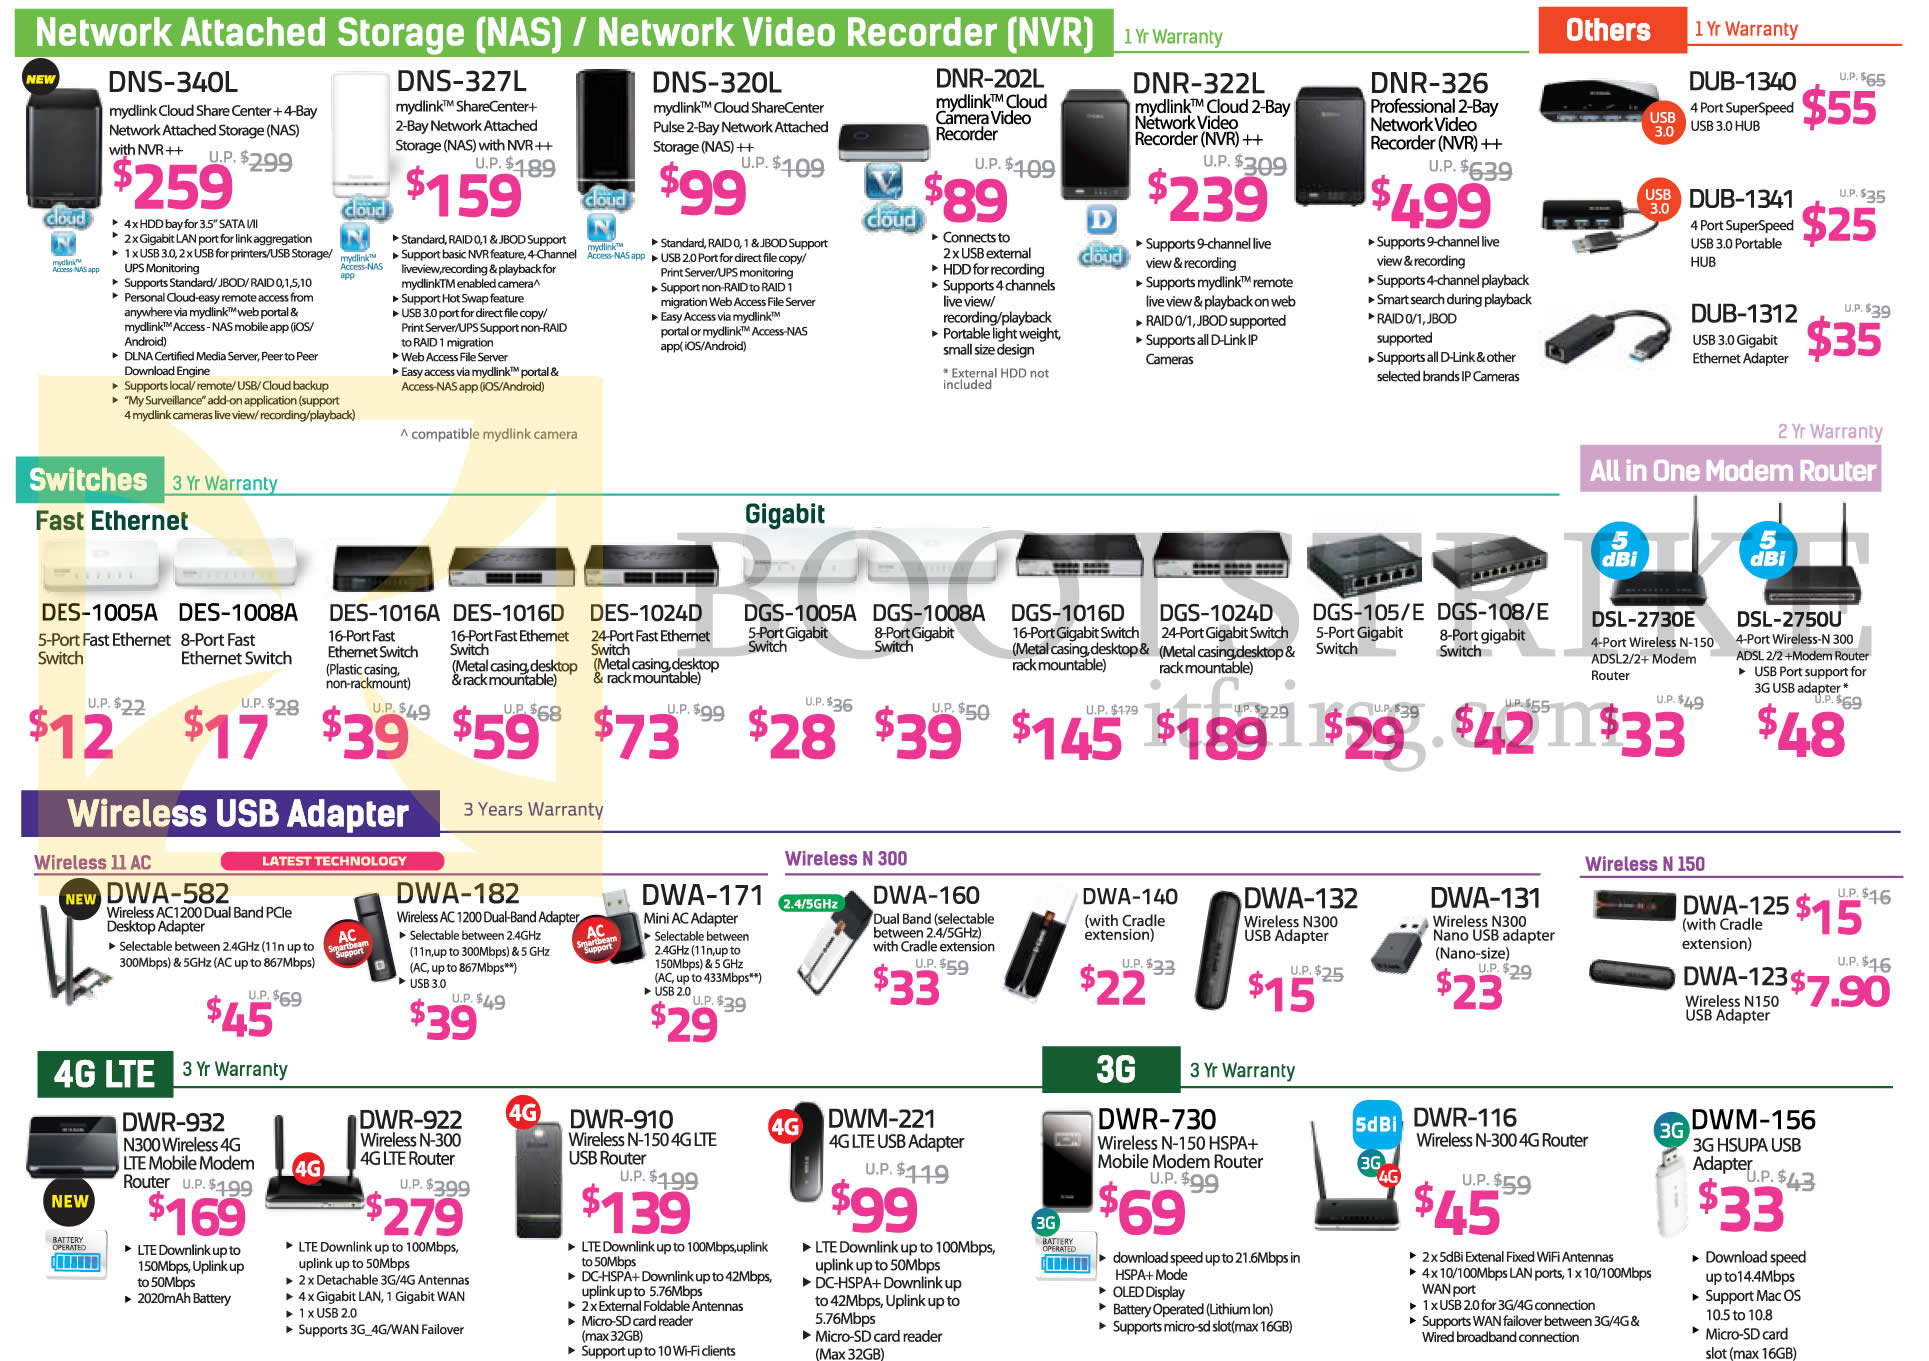 IT SHOW 2015 price list image brochure of D-Link NAS, NVR, Switches, Modem Router, Wireless USB Adapter, DNS-340L, 327L, 320L, DNR-202L, 322L, 326, DUB-1340, 1341, 1312, DES-1005A, 1008A, 1016A, 1024D, DSL-2730E, DSL-2750U